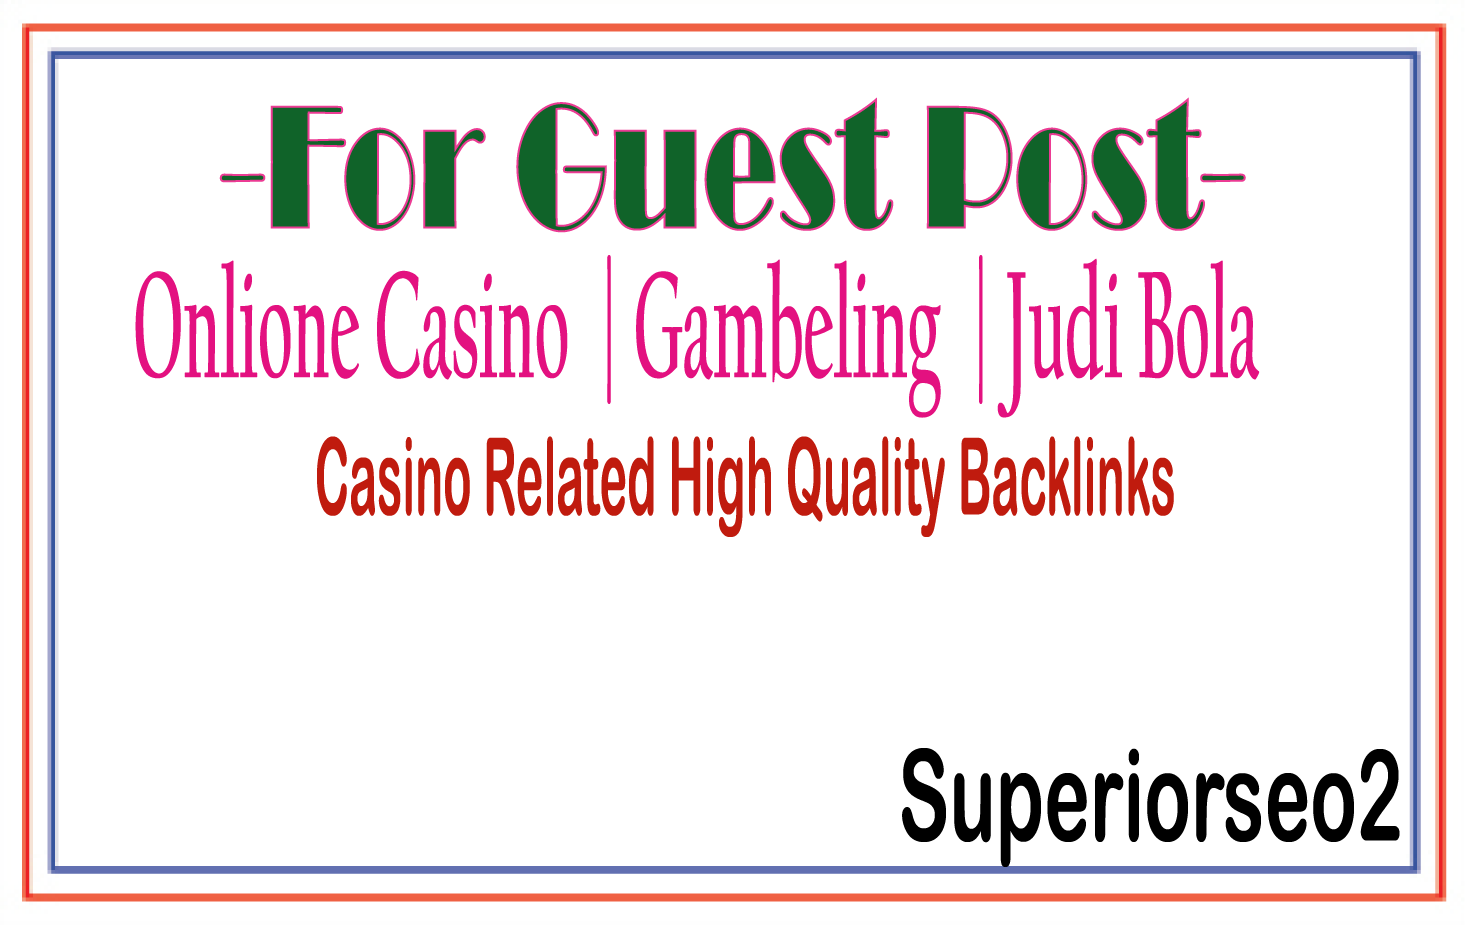 Publish A Guest Post on Casino-Gambling Related Site Plus 500 BLOG COMMENT